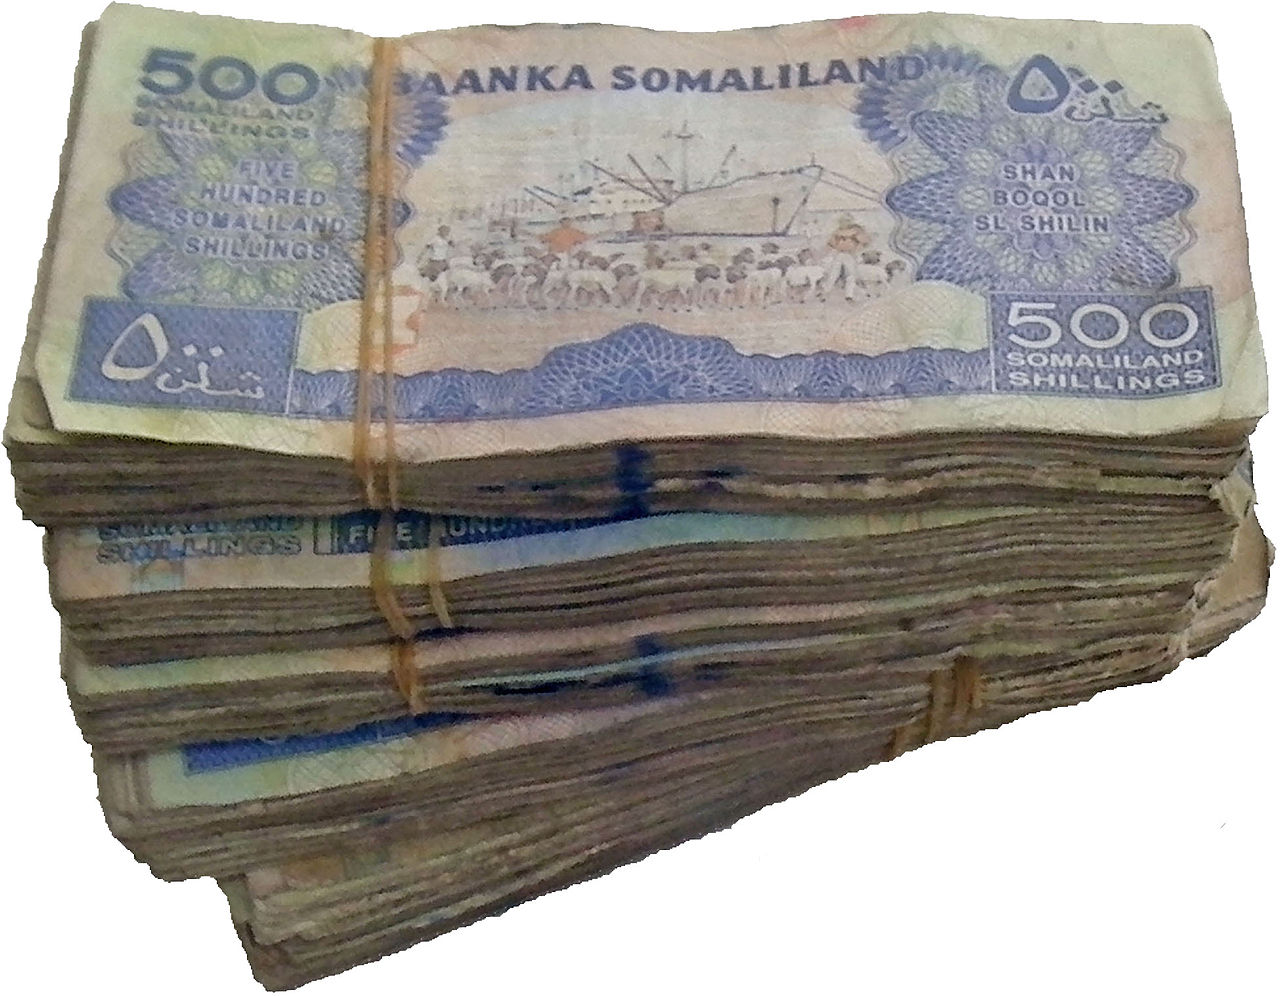 http://upload.wikimedia.org/wikipedia/commons/thumb/f/ff/50_USD_in_Somaliland_Shillings.jpg/1280px-50_USD_in_Somaliland_Shillings.jpg